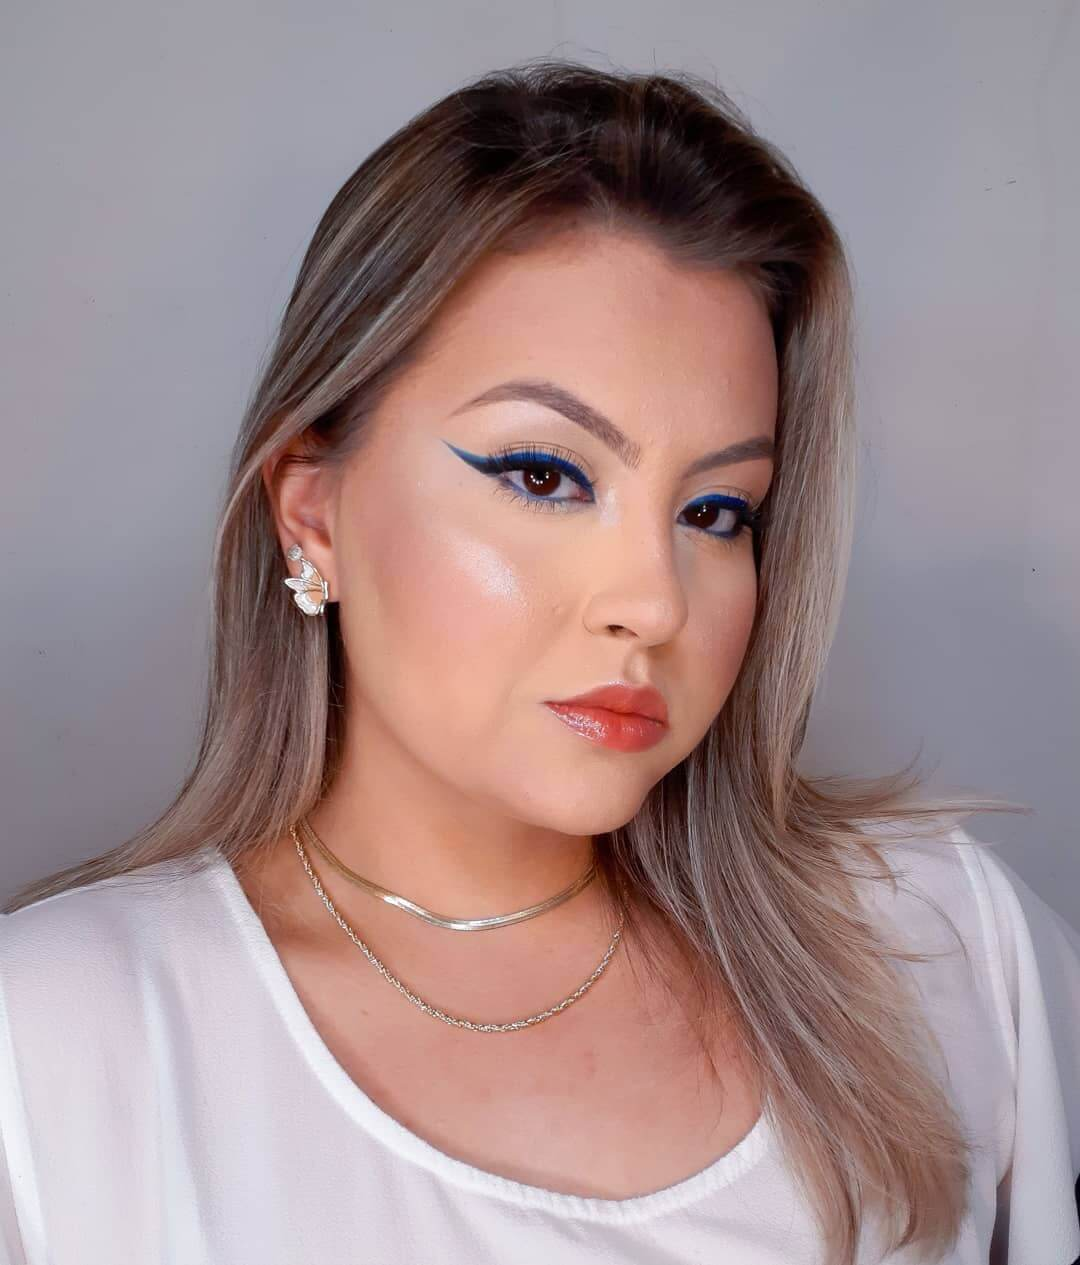 25. Feel glamorous with this makeup option